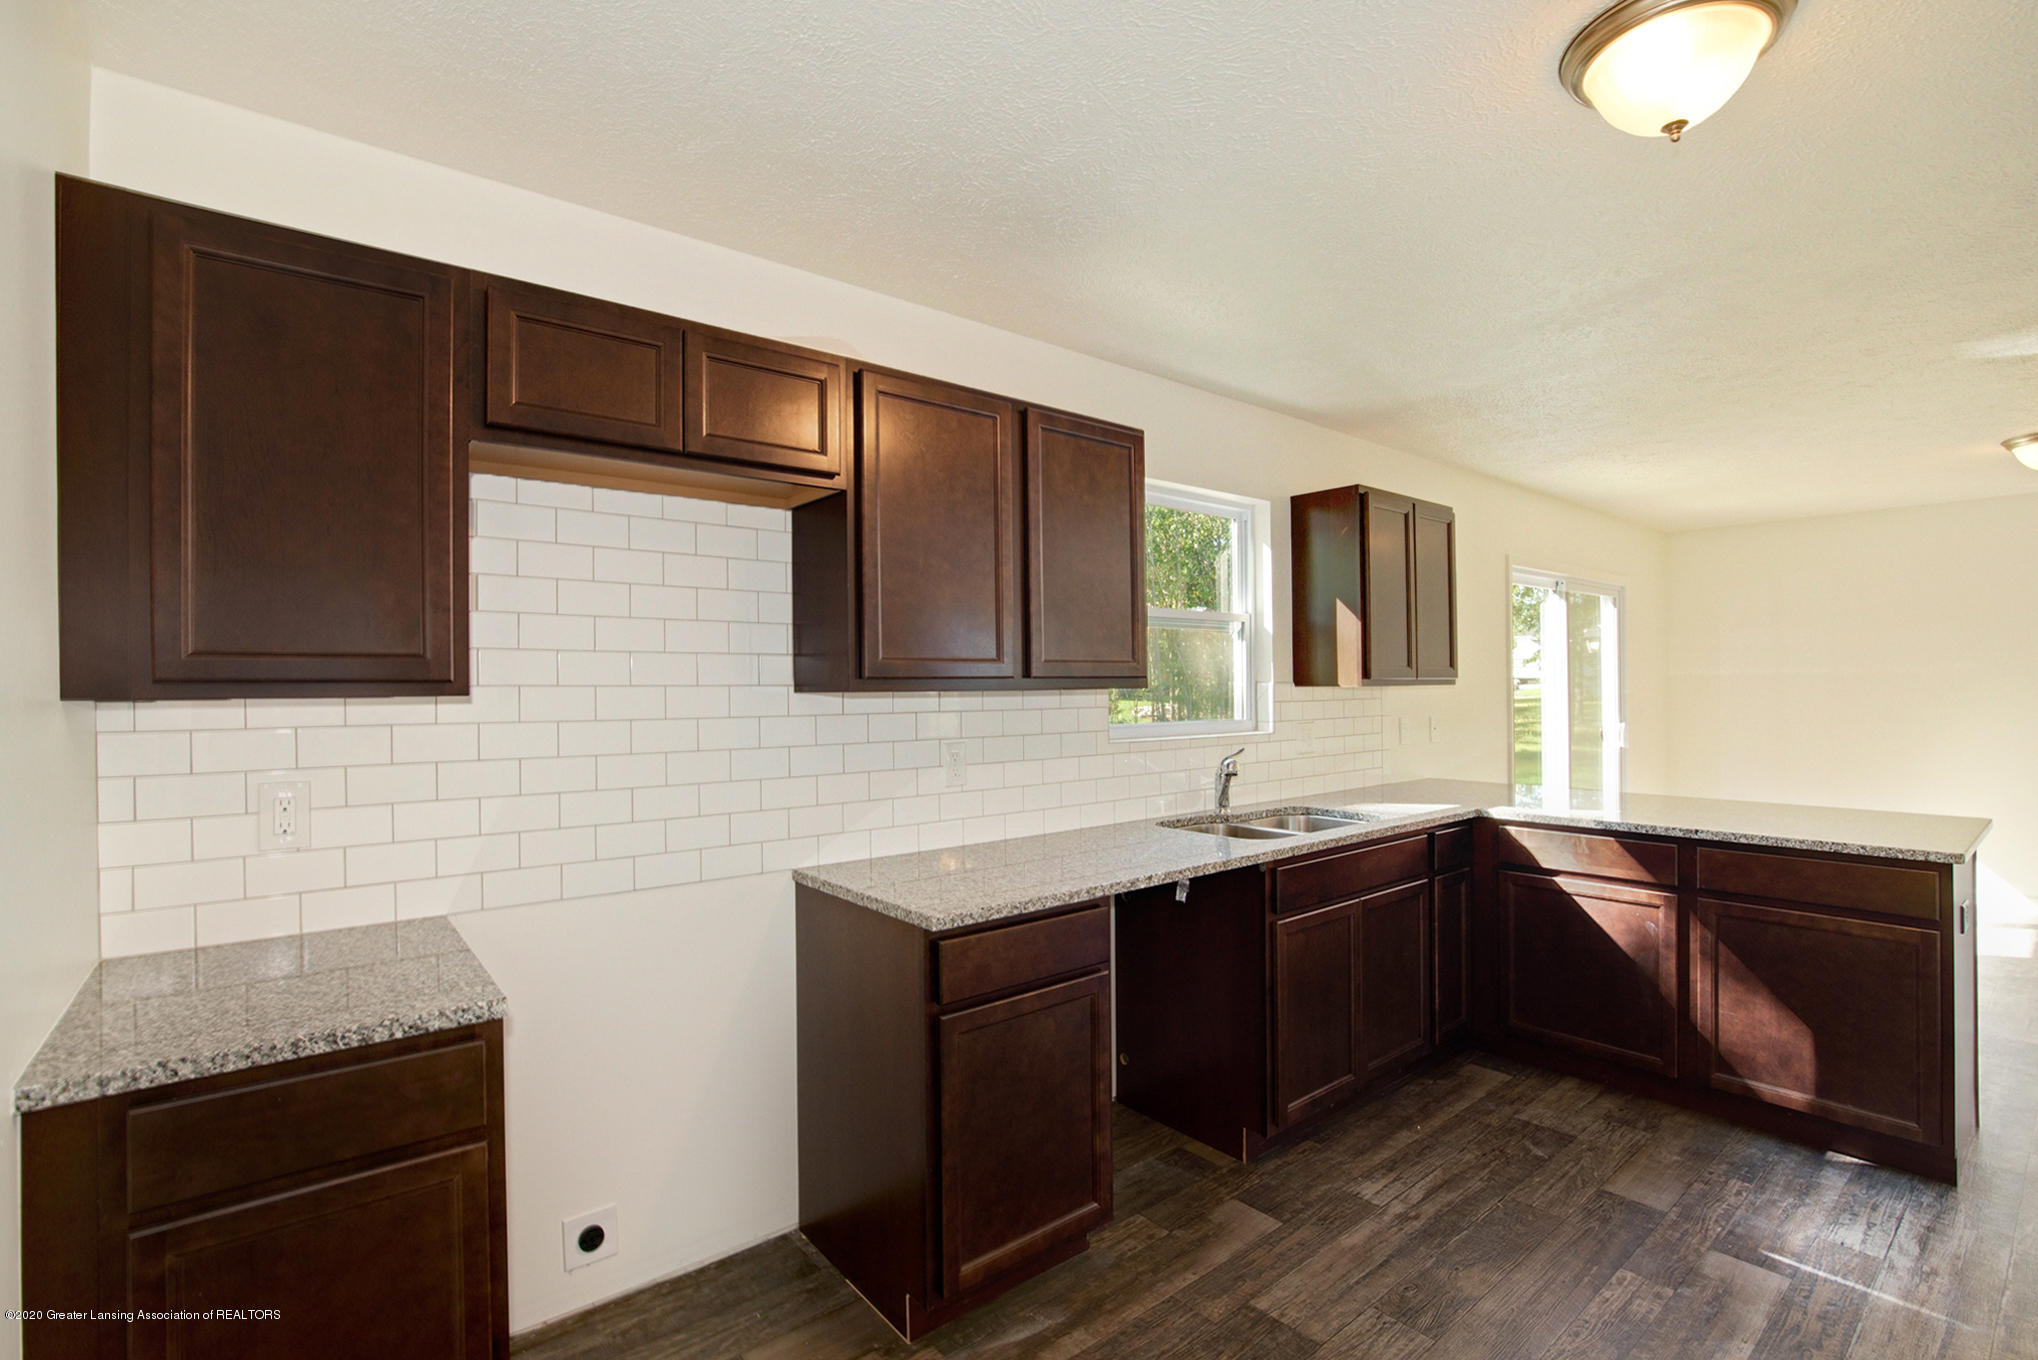 236 River Oaks Dr - OAK079-i1810-Kitchen2 - 8